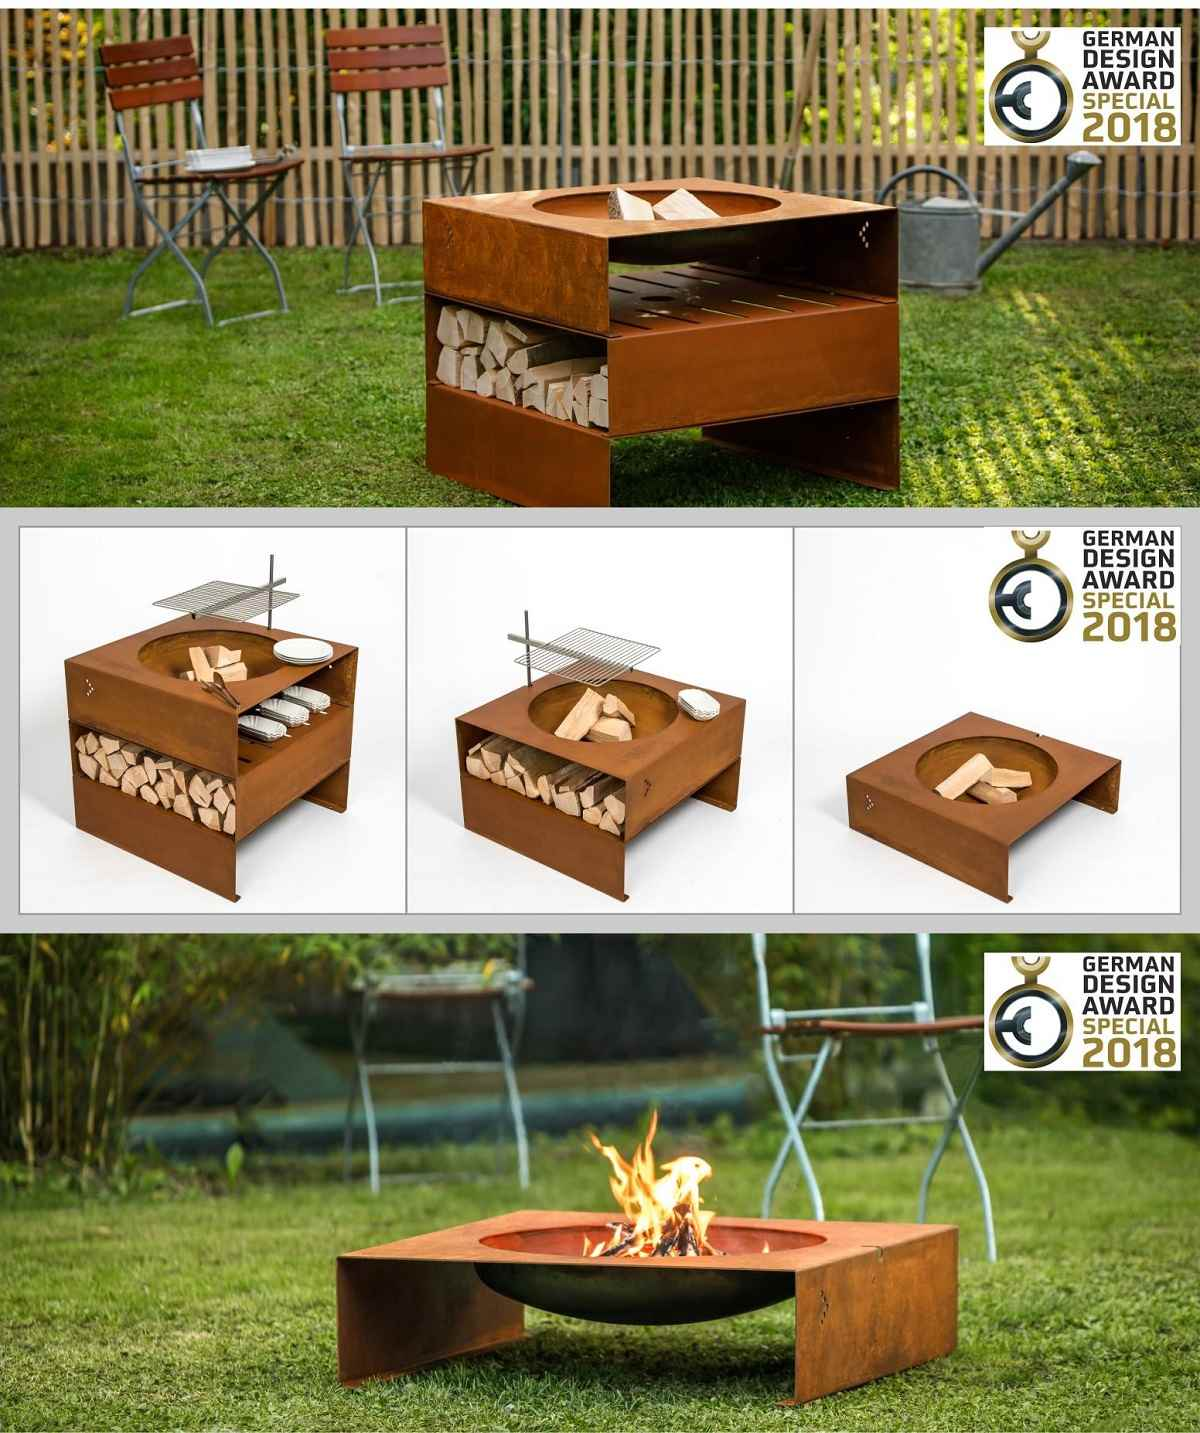 feuerstelle mit mit grill xcm design garten feuerstelle mit dem german design award. Black Bedroom Furniture Sets. Home Design Ideas